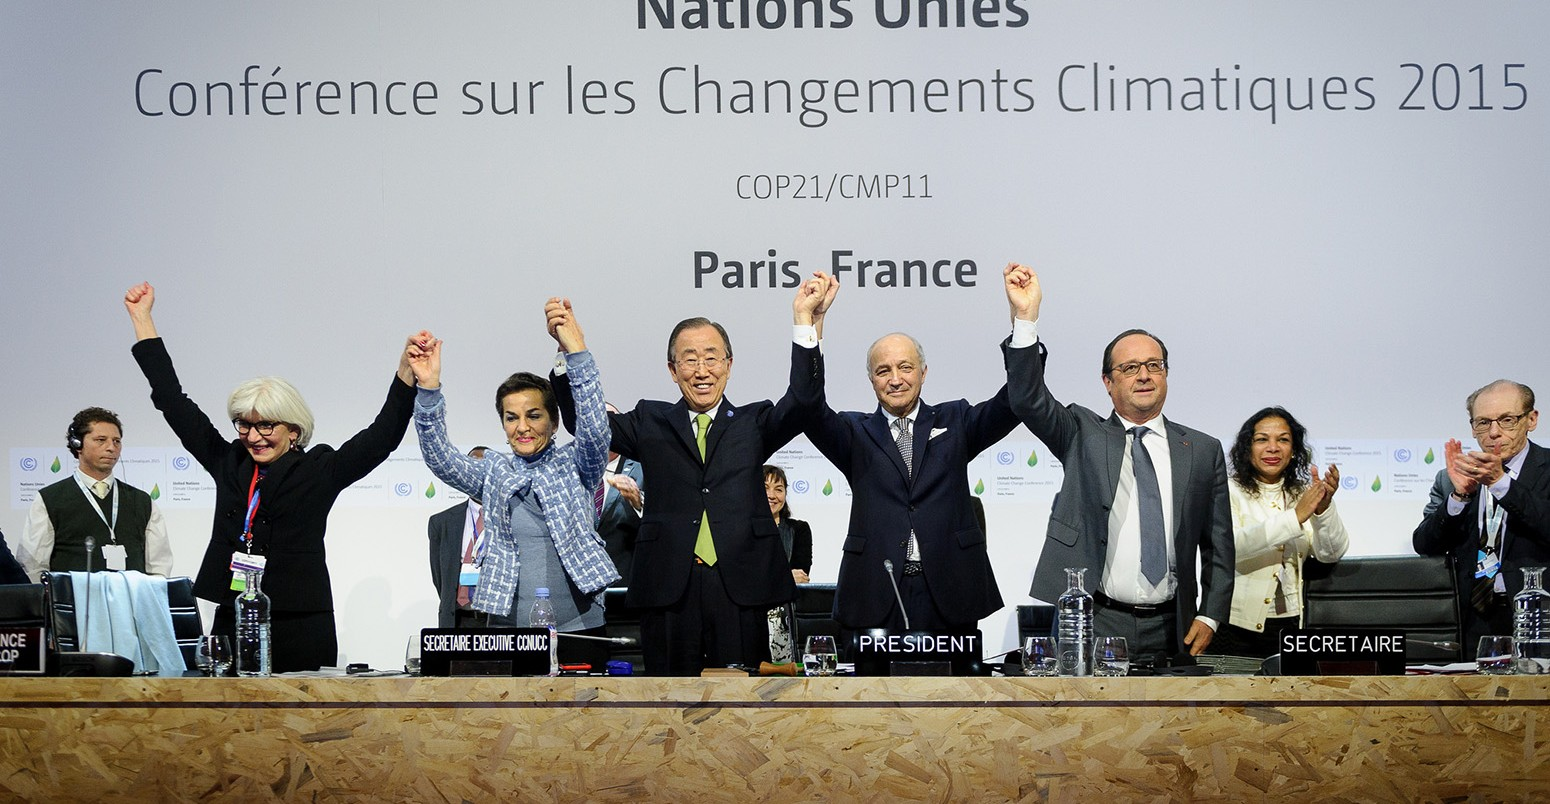 Delegates celebrate after the signing of the Paris Agreement. Source: Carbonbrief.org